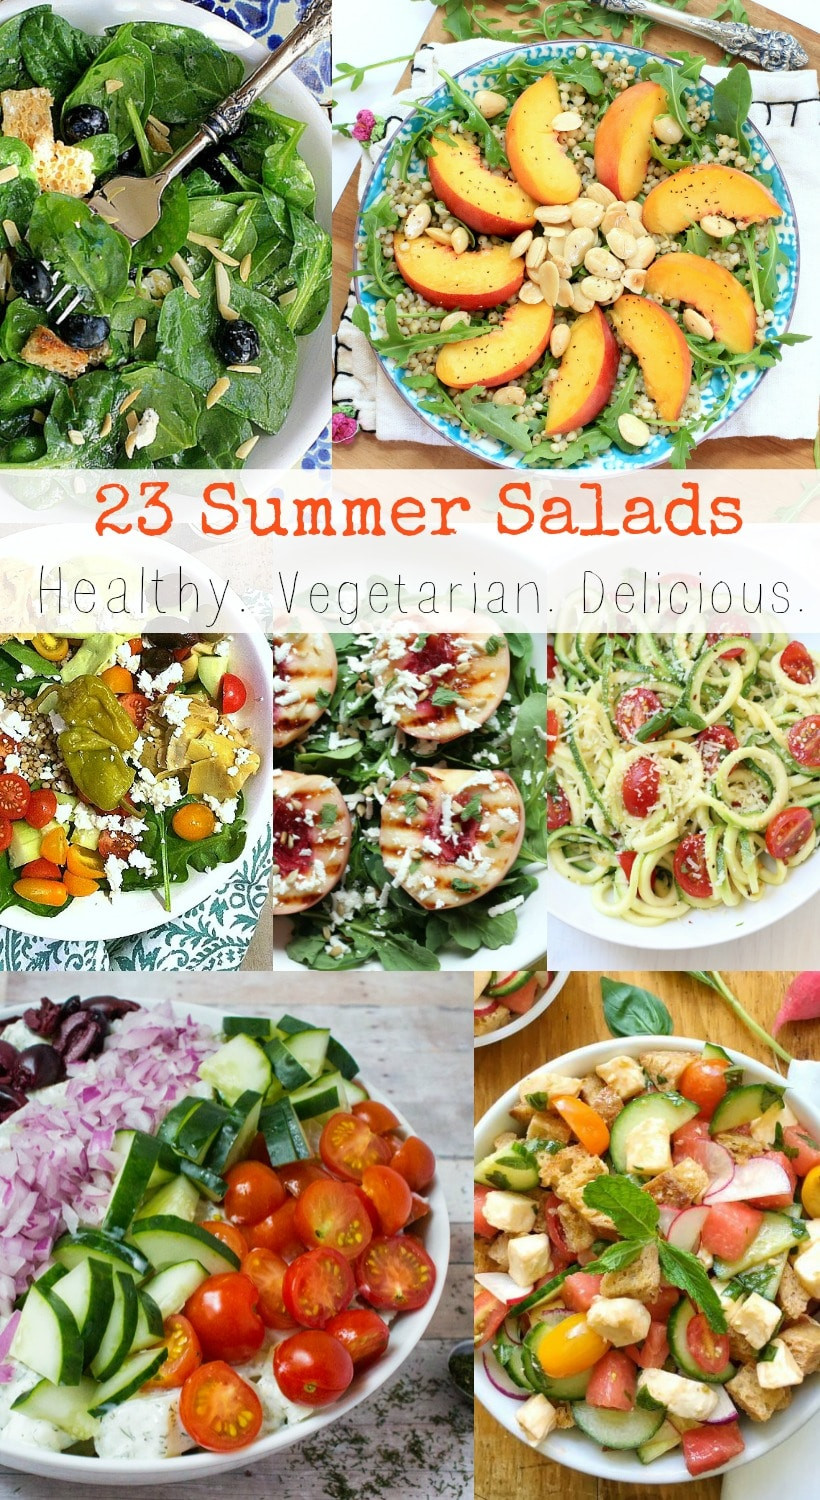 Healthy Summer Vegetarian Recipes  43 Healthy y Summer Salads Your Body Will Love